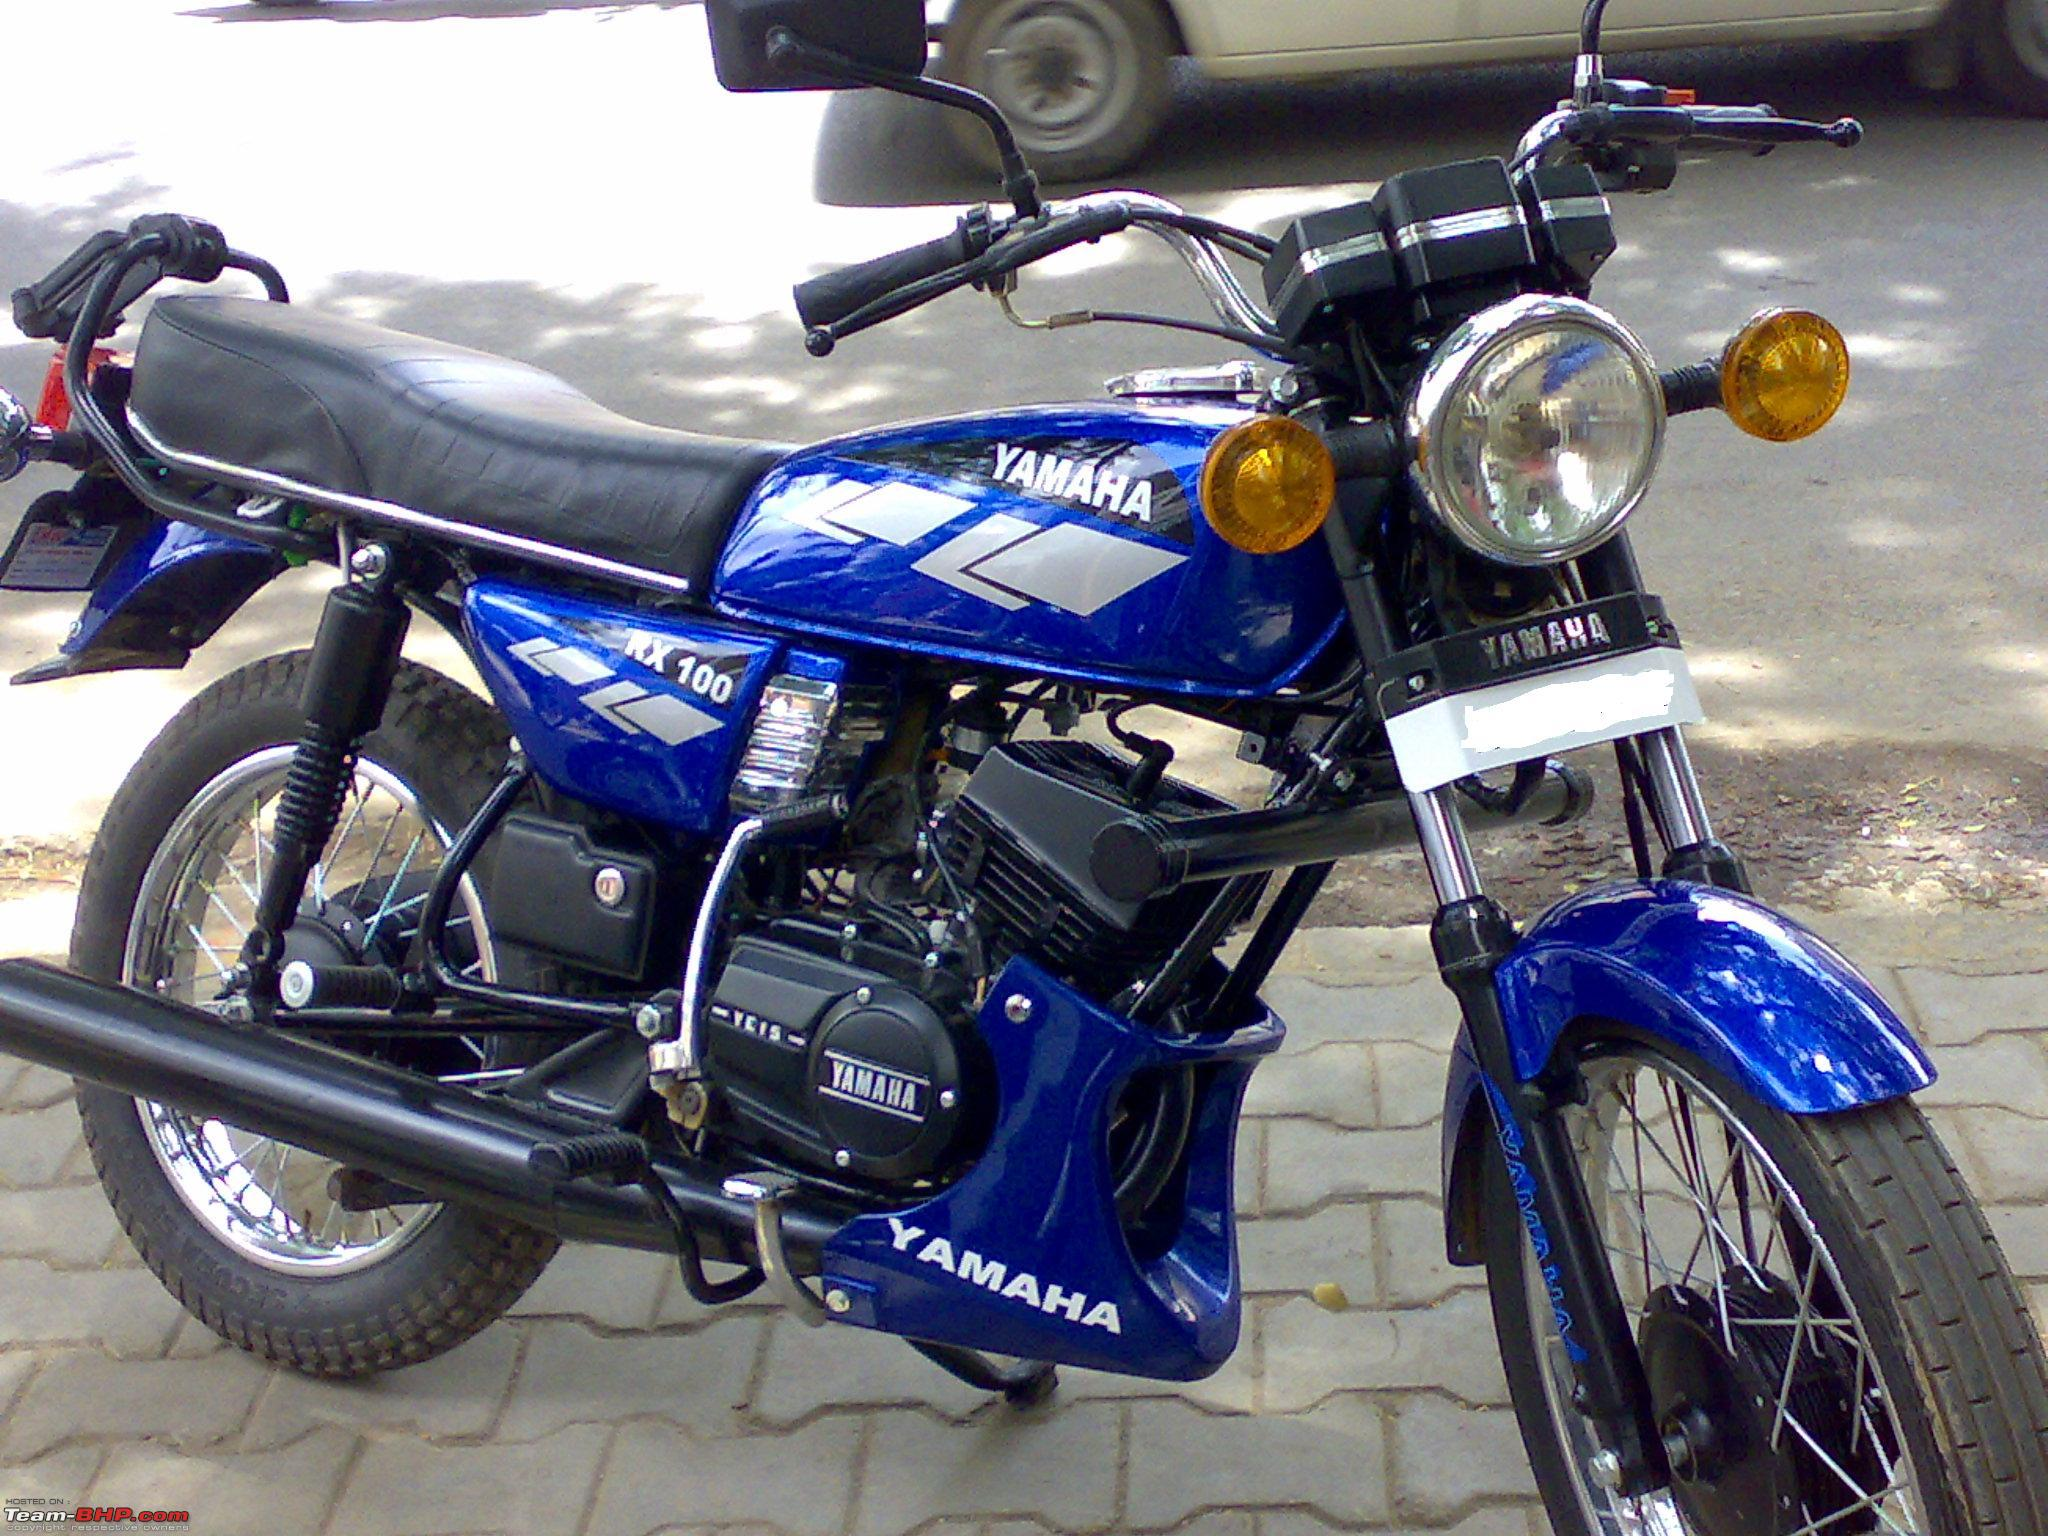 my yamaha rx100 cafe racer modification thread dec 09 back to